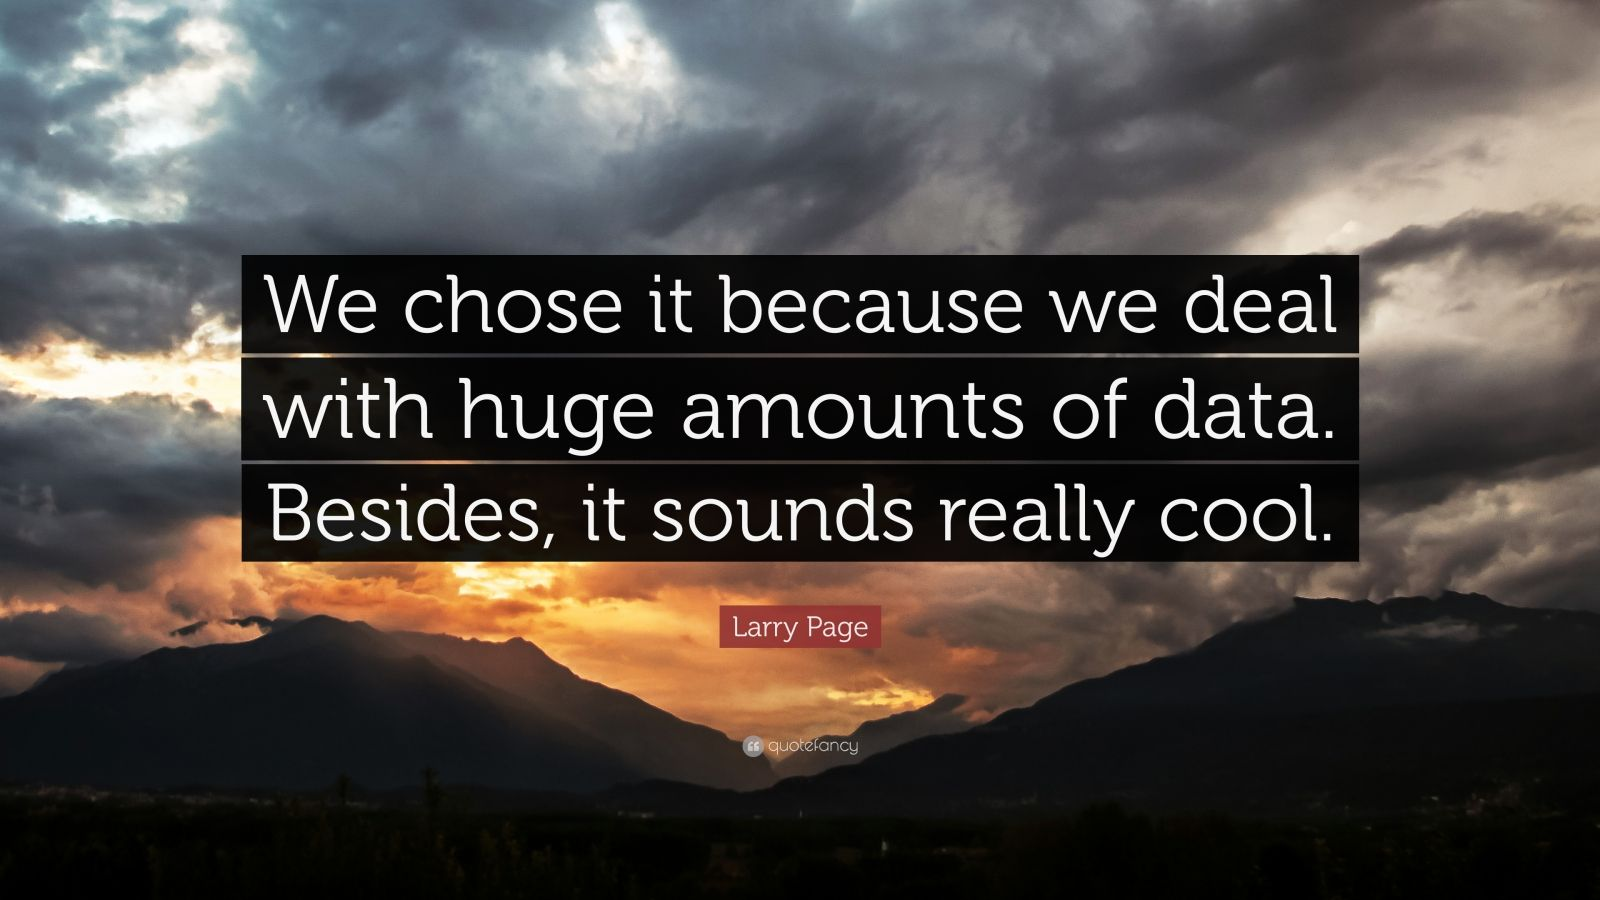 """Larry Page Quote: """"We chose it because we deal with huge amounts of data. Besides, it sounds really cool."""""""